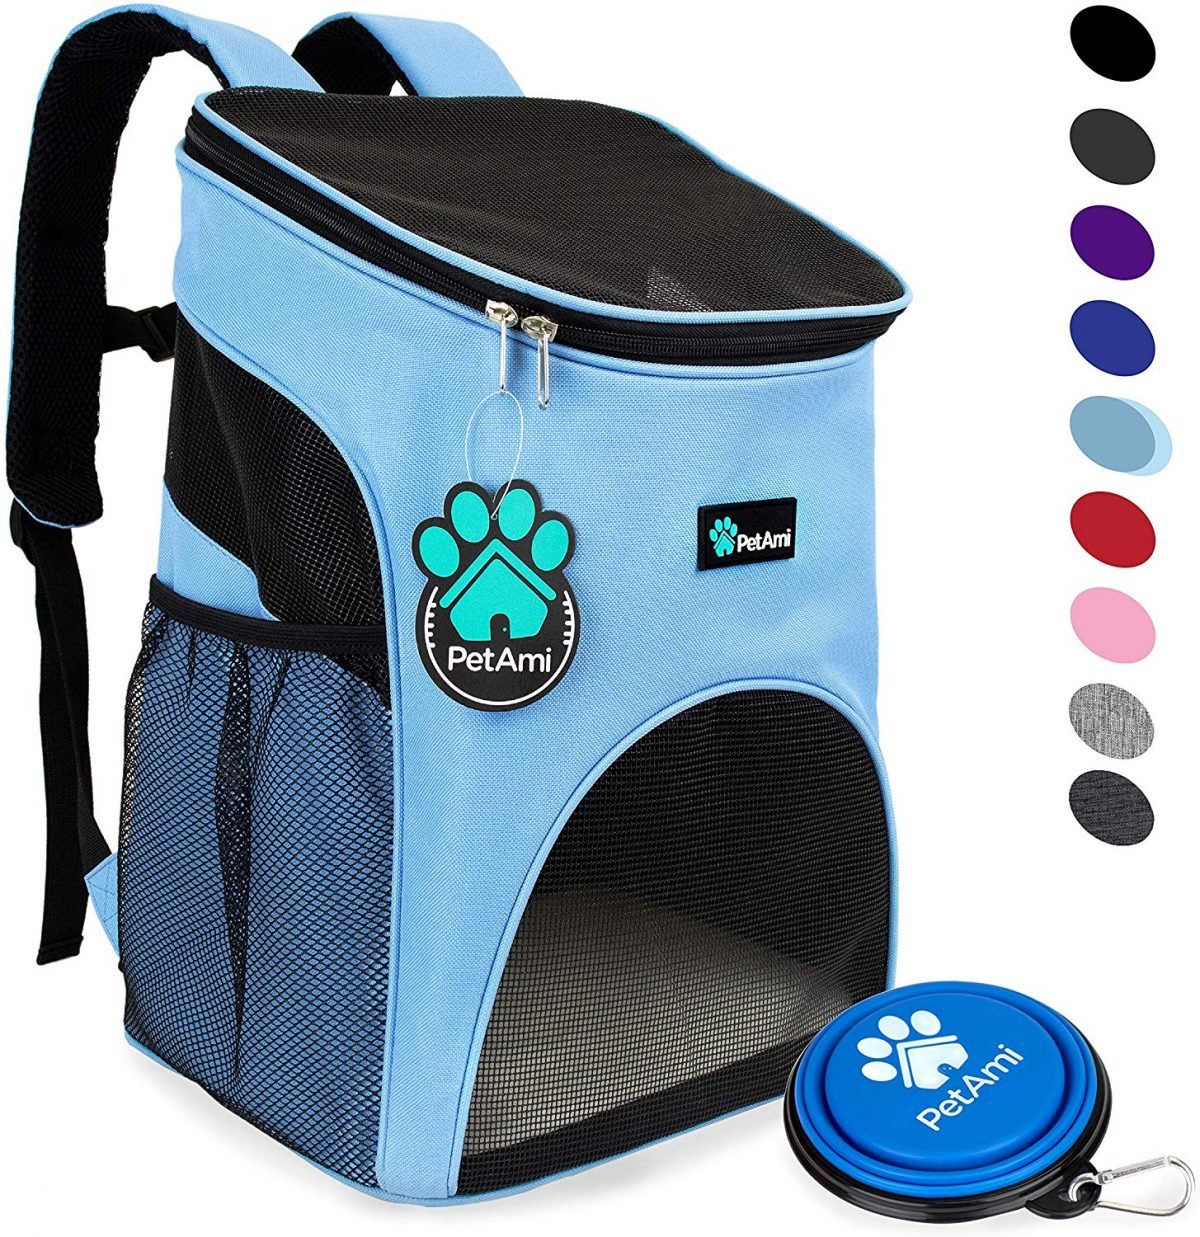 Photo of a sky blue with an opening on the bottom and top with black accents, with swatches of various textures and designs to the right side and a blue collapsible dog bowl in front of the bag